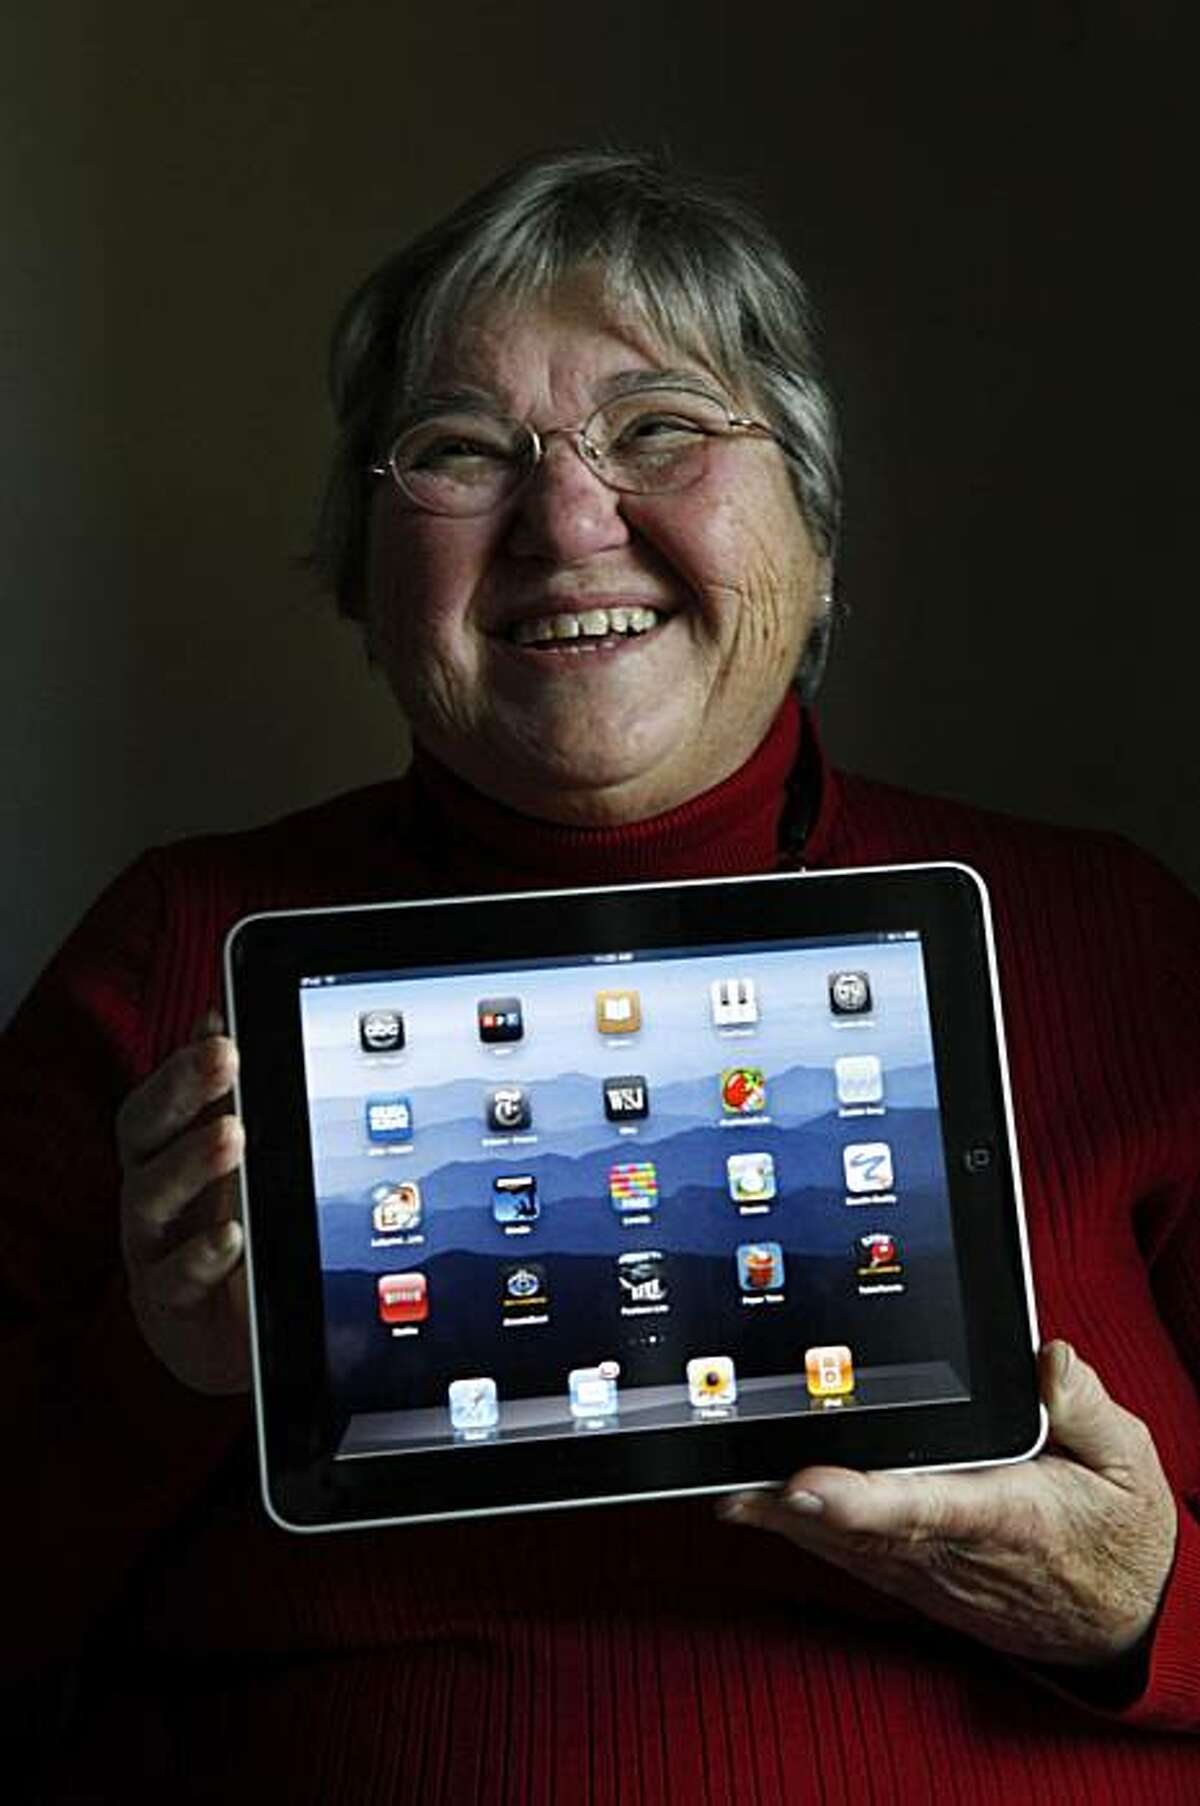 Rita Schena, 78, sits for a portrait with her new iPad at home on Thursday April 29, 2010 in Menlo Park, Calif. Schena said she is very excited to have this device and feels its perfect for seniors on the go.